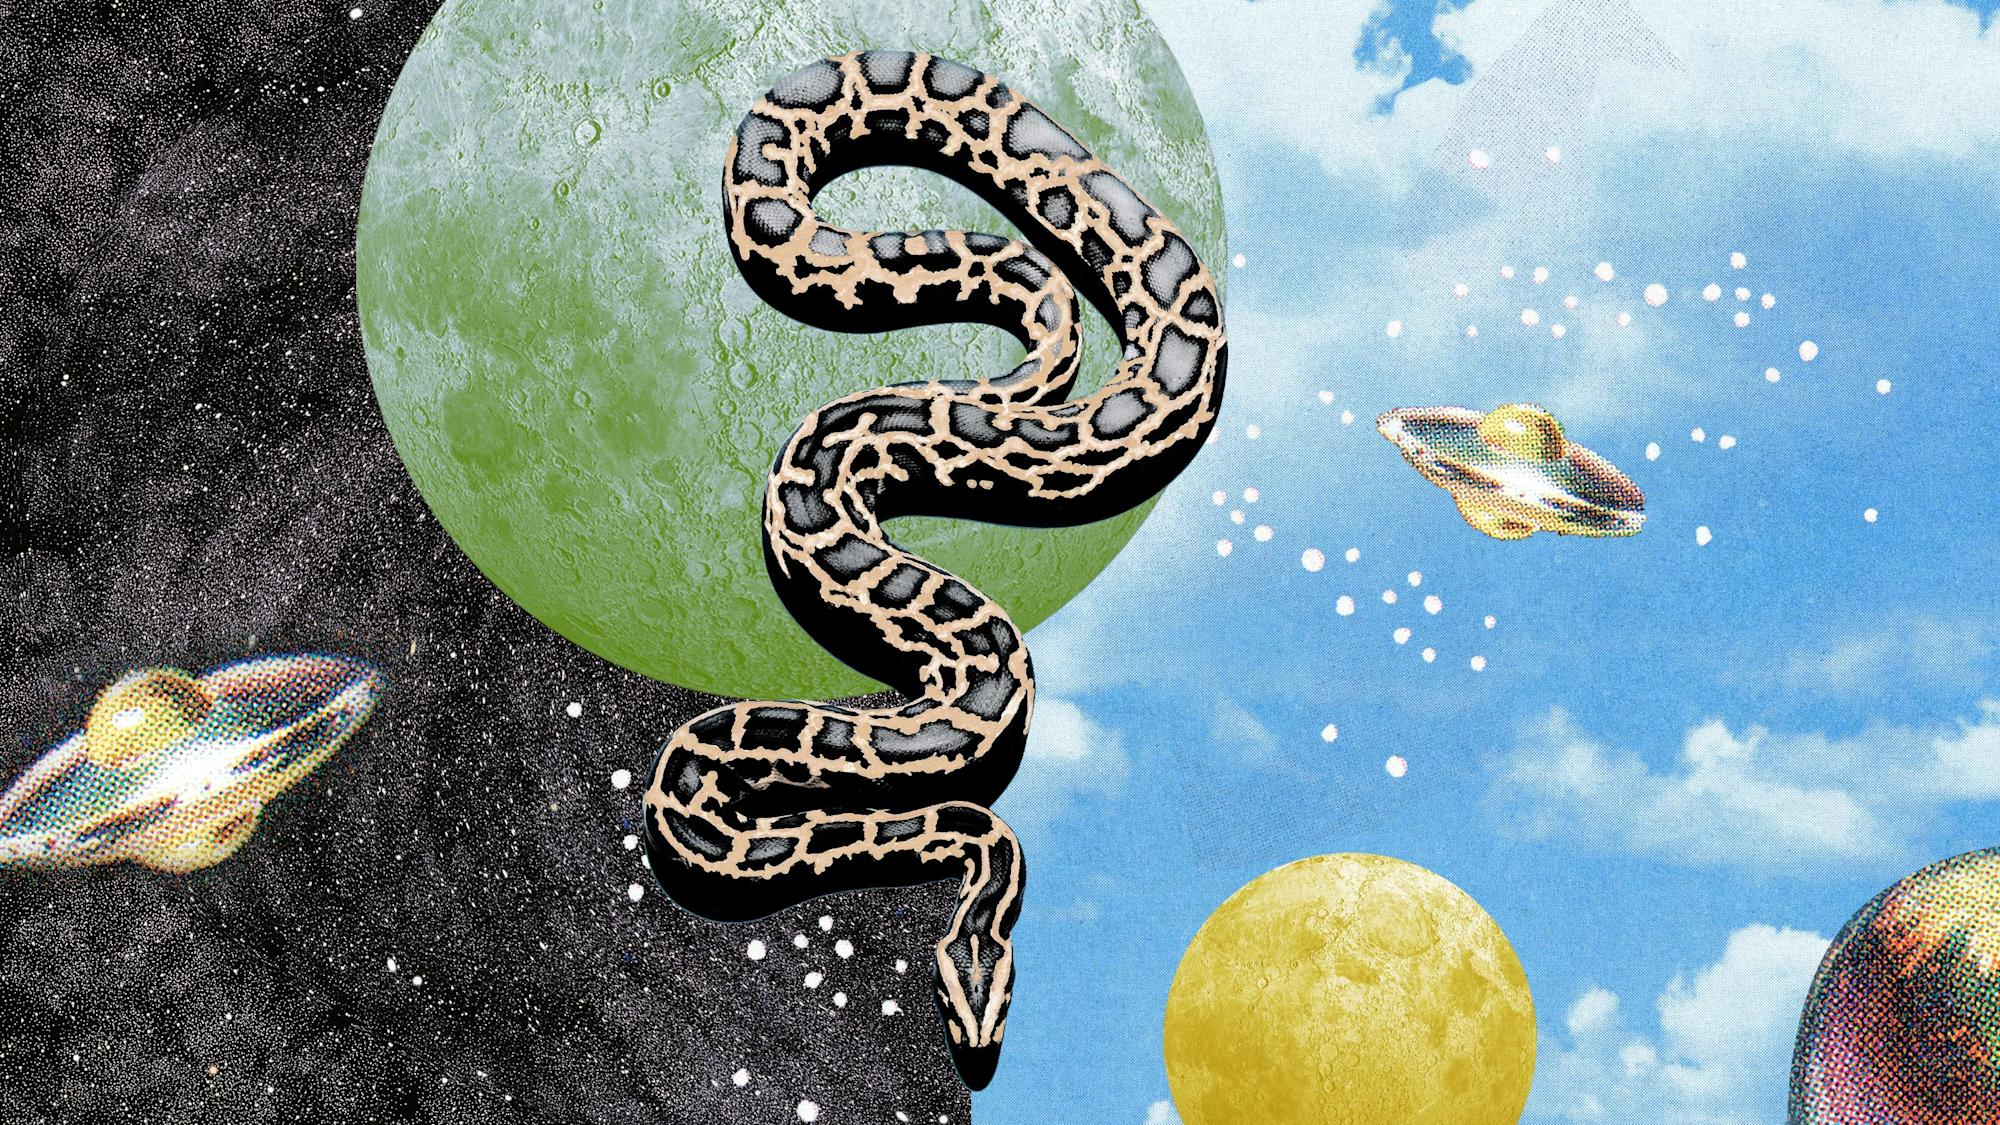 What Do Dreams About Snakes Mean